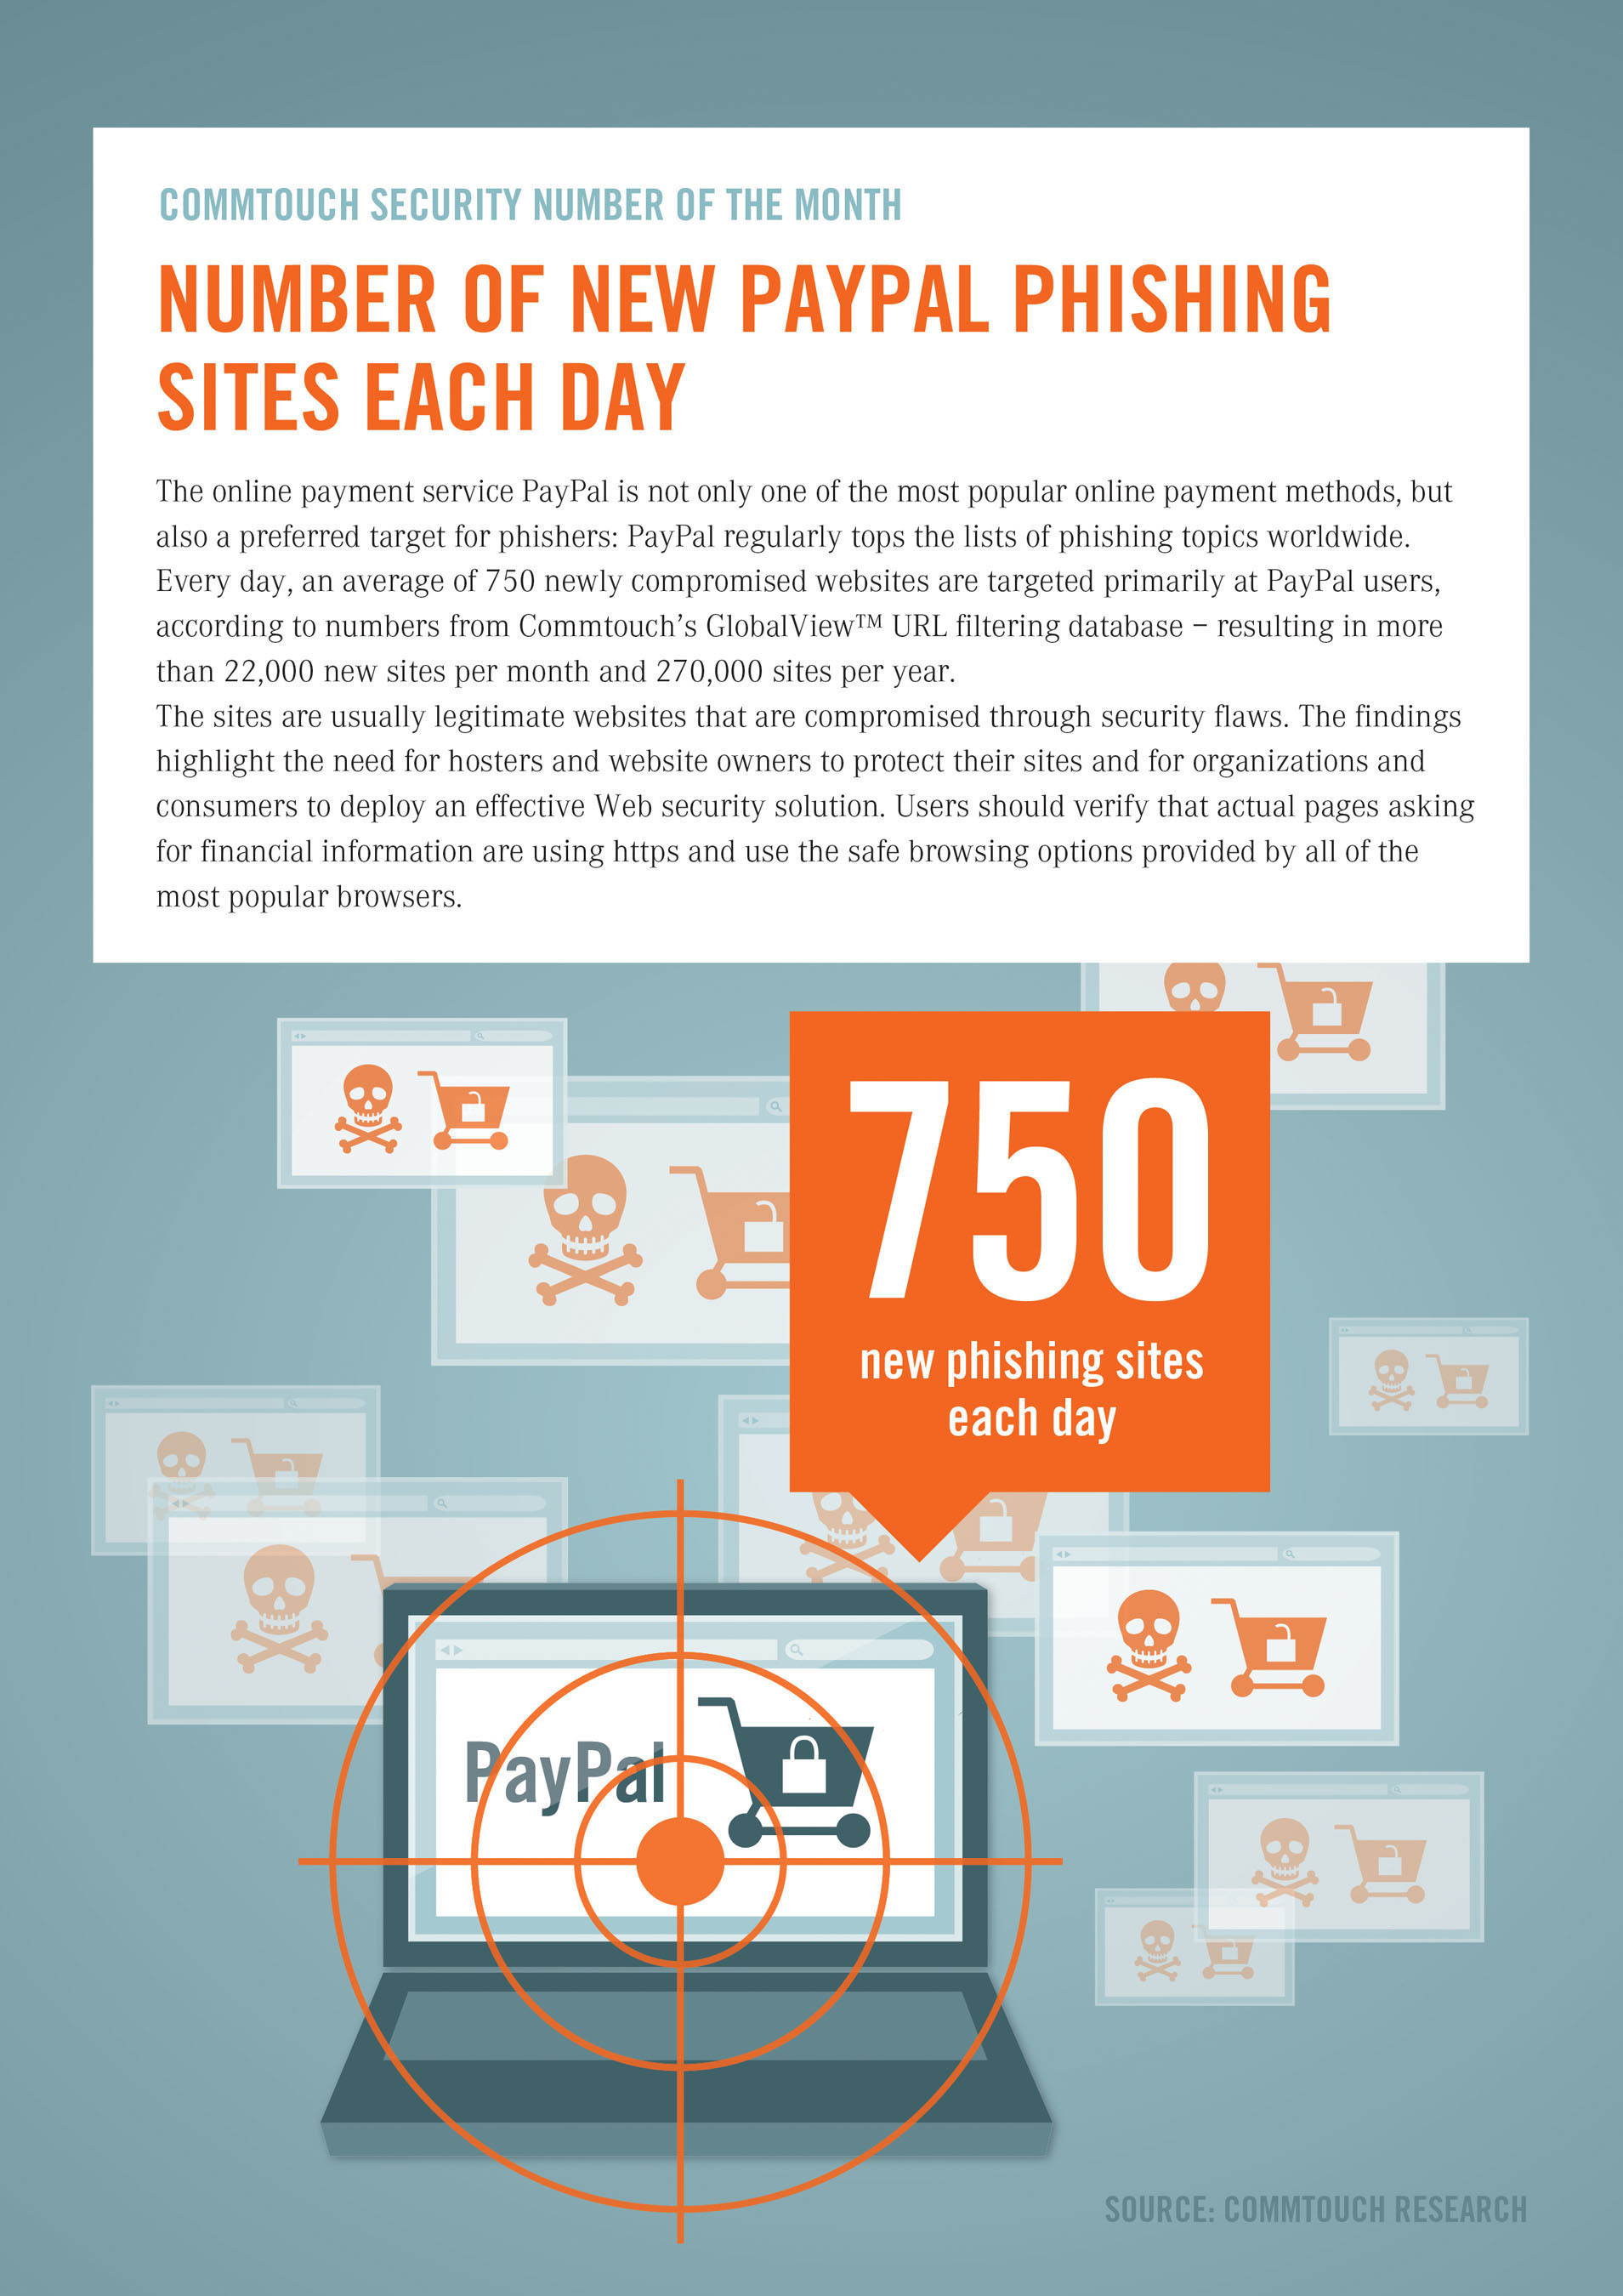 Commtouch Security Number of the Month August 2013: 750 New PayPal Phishing Sites Each Day